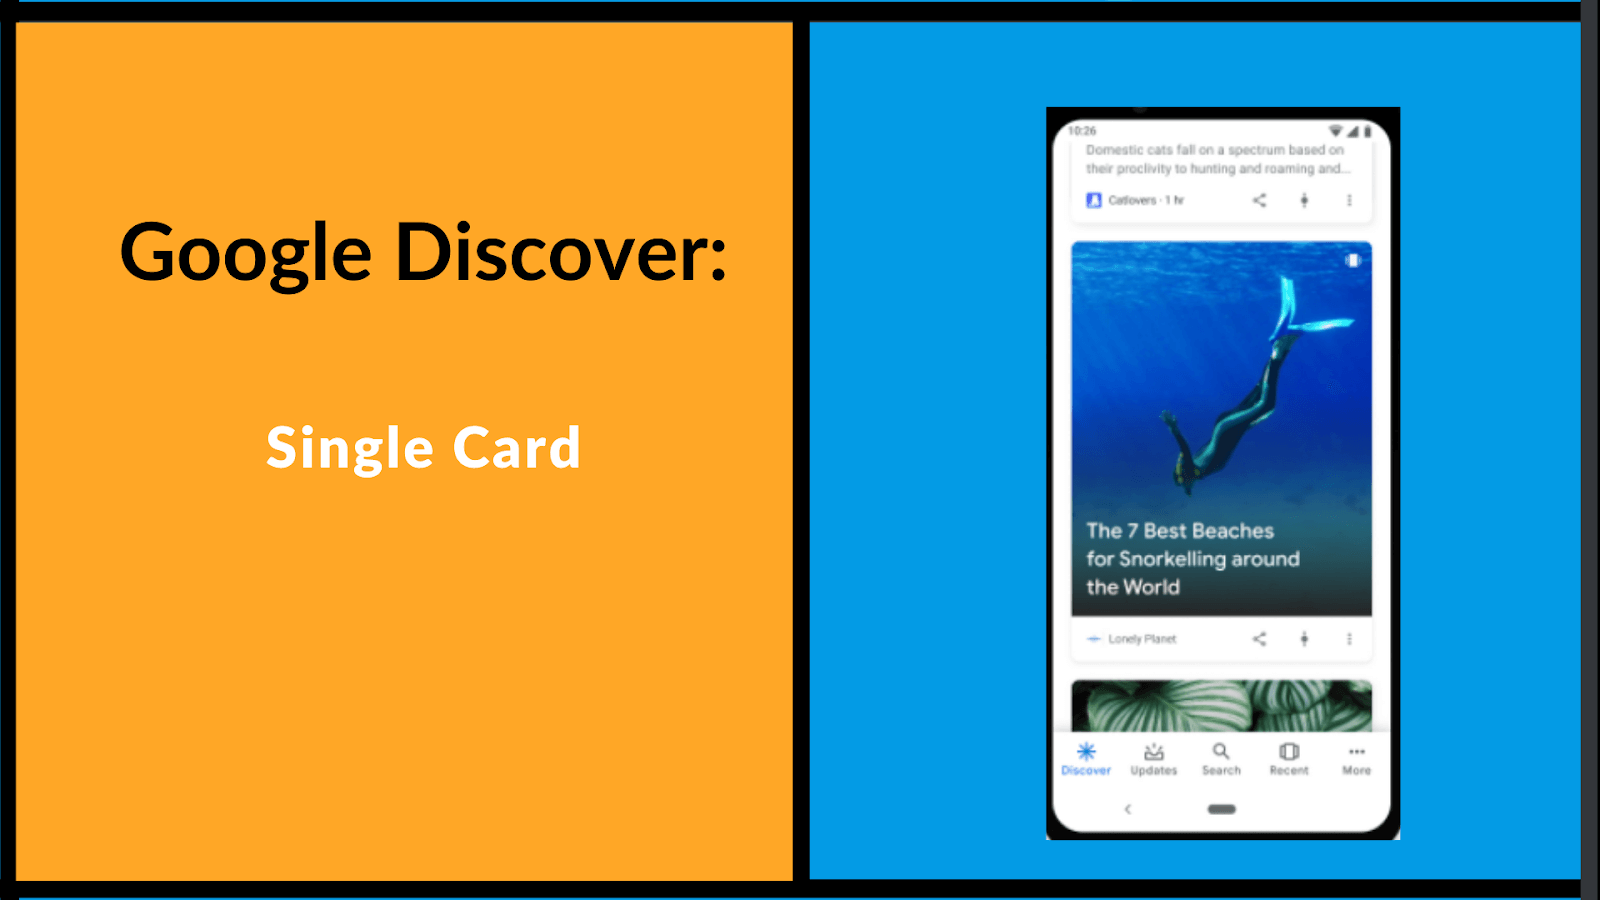 google discover showing as a single card